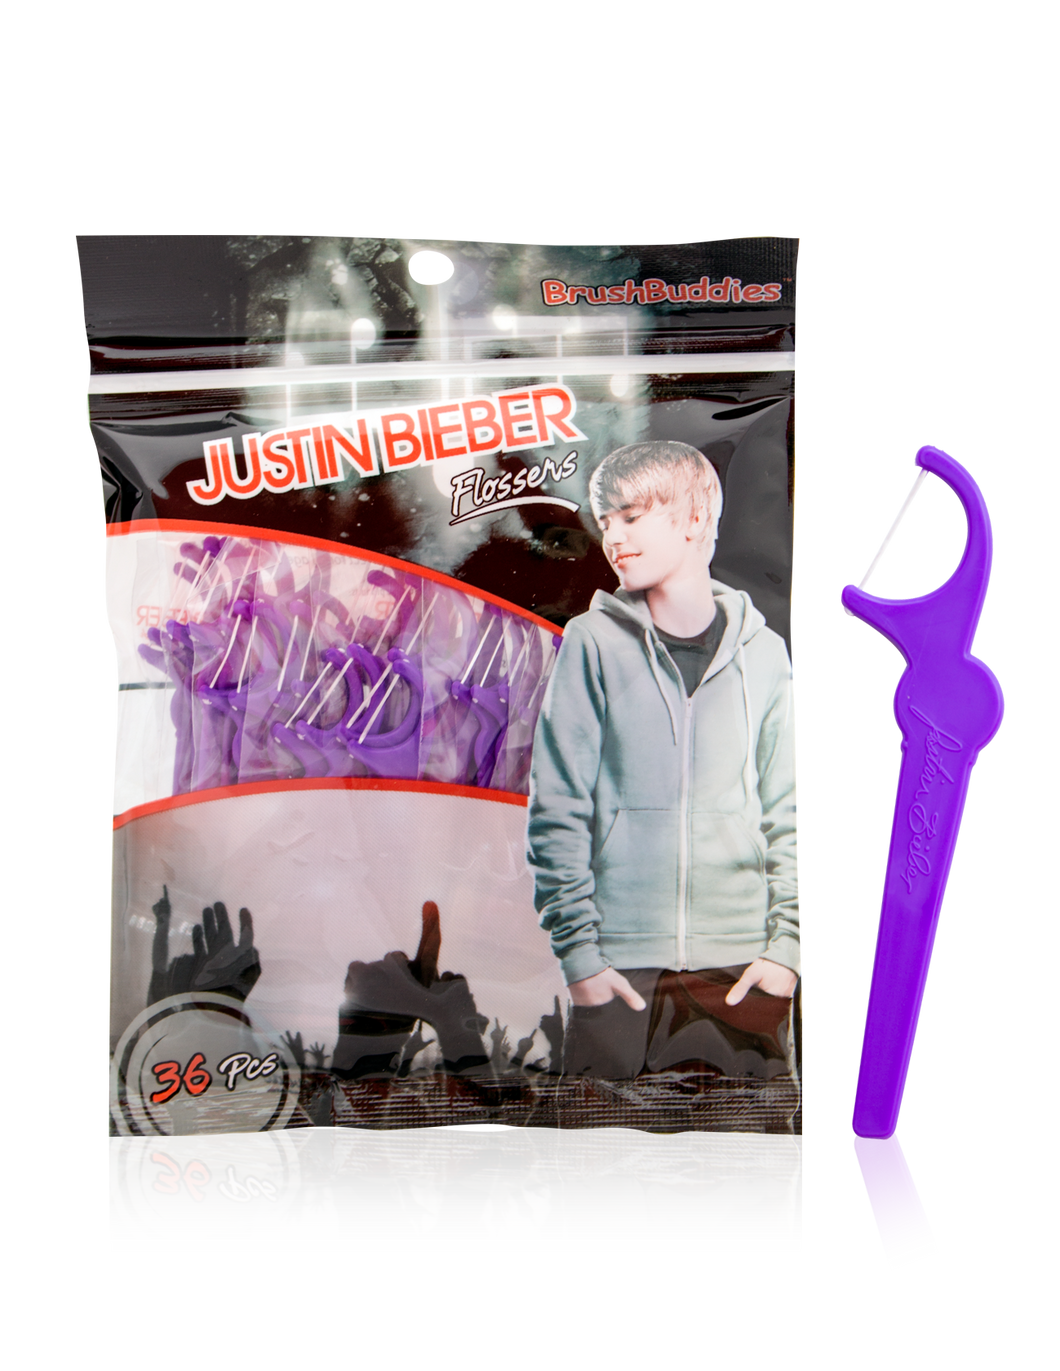 Brush Buddies Justin Bieber Flossers 36 Count